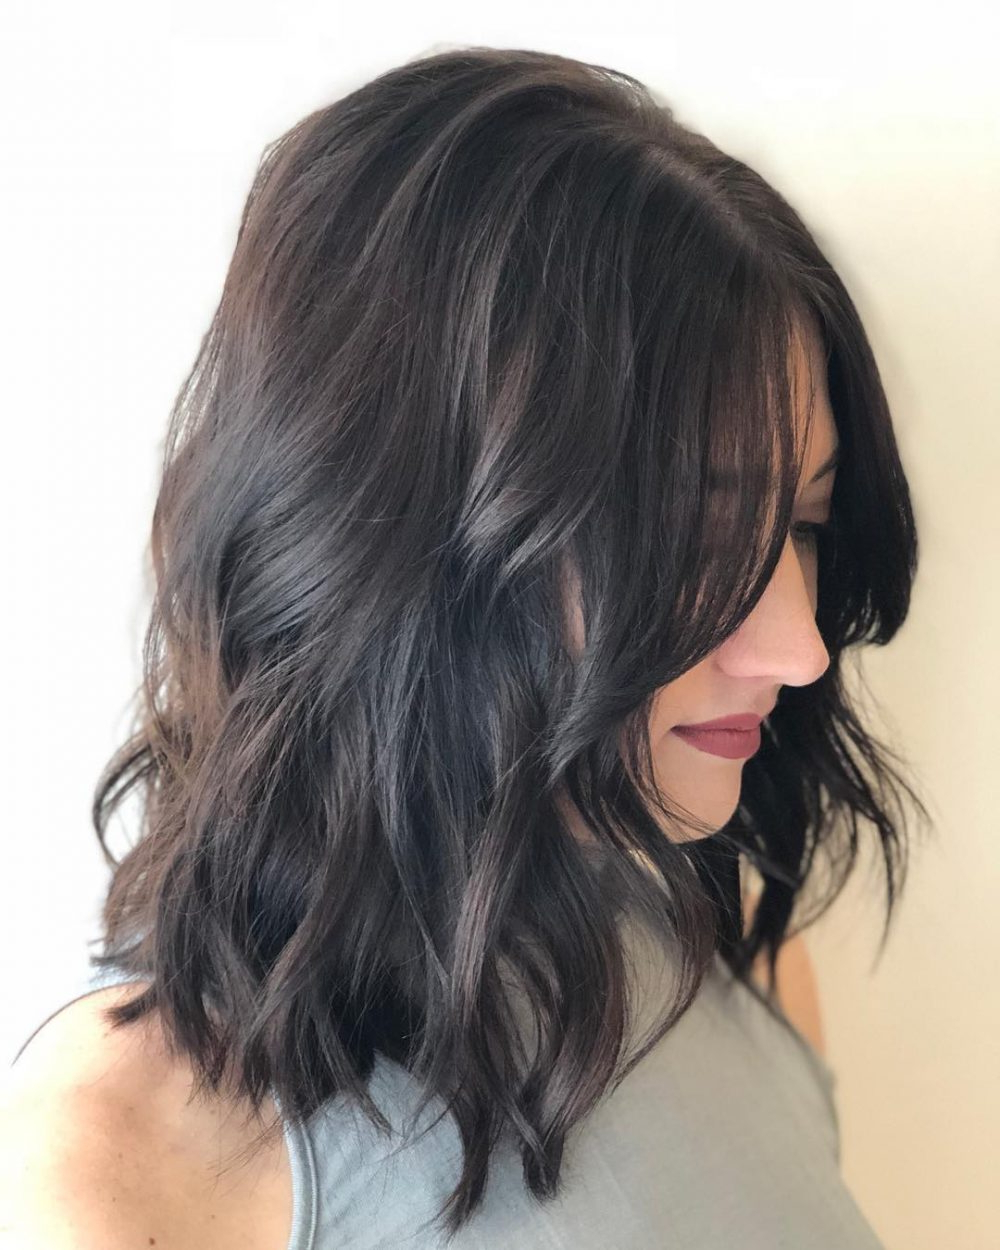 55 Perfect Hairstyles For Thick Hair (popular For 2018) Pertaining To Pretty And Sleek Hairstyles For Thick Hair (View 4 of 20)